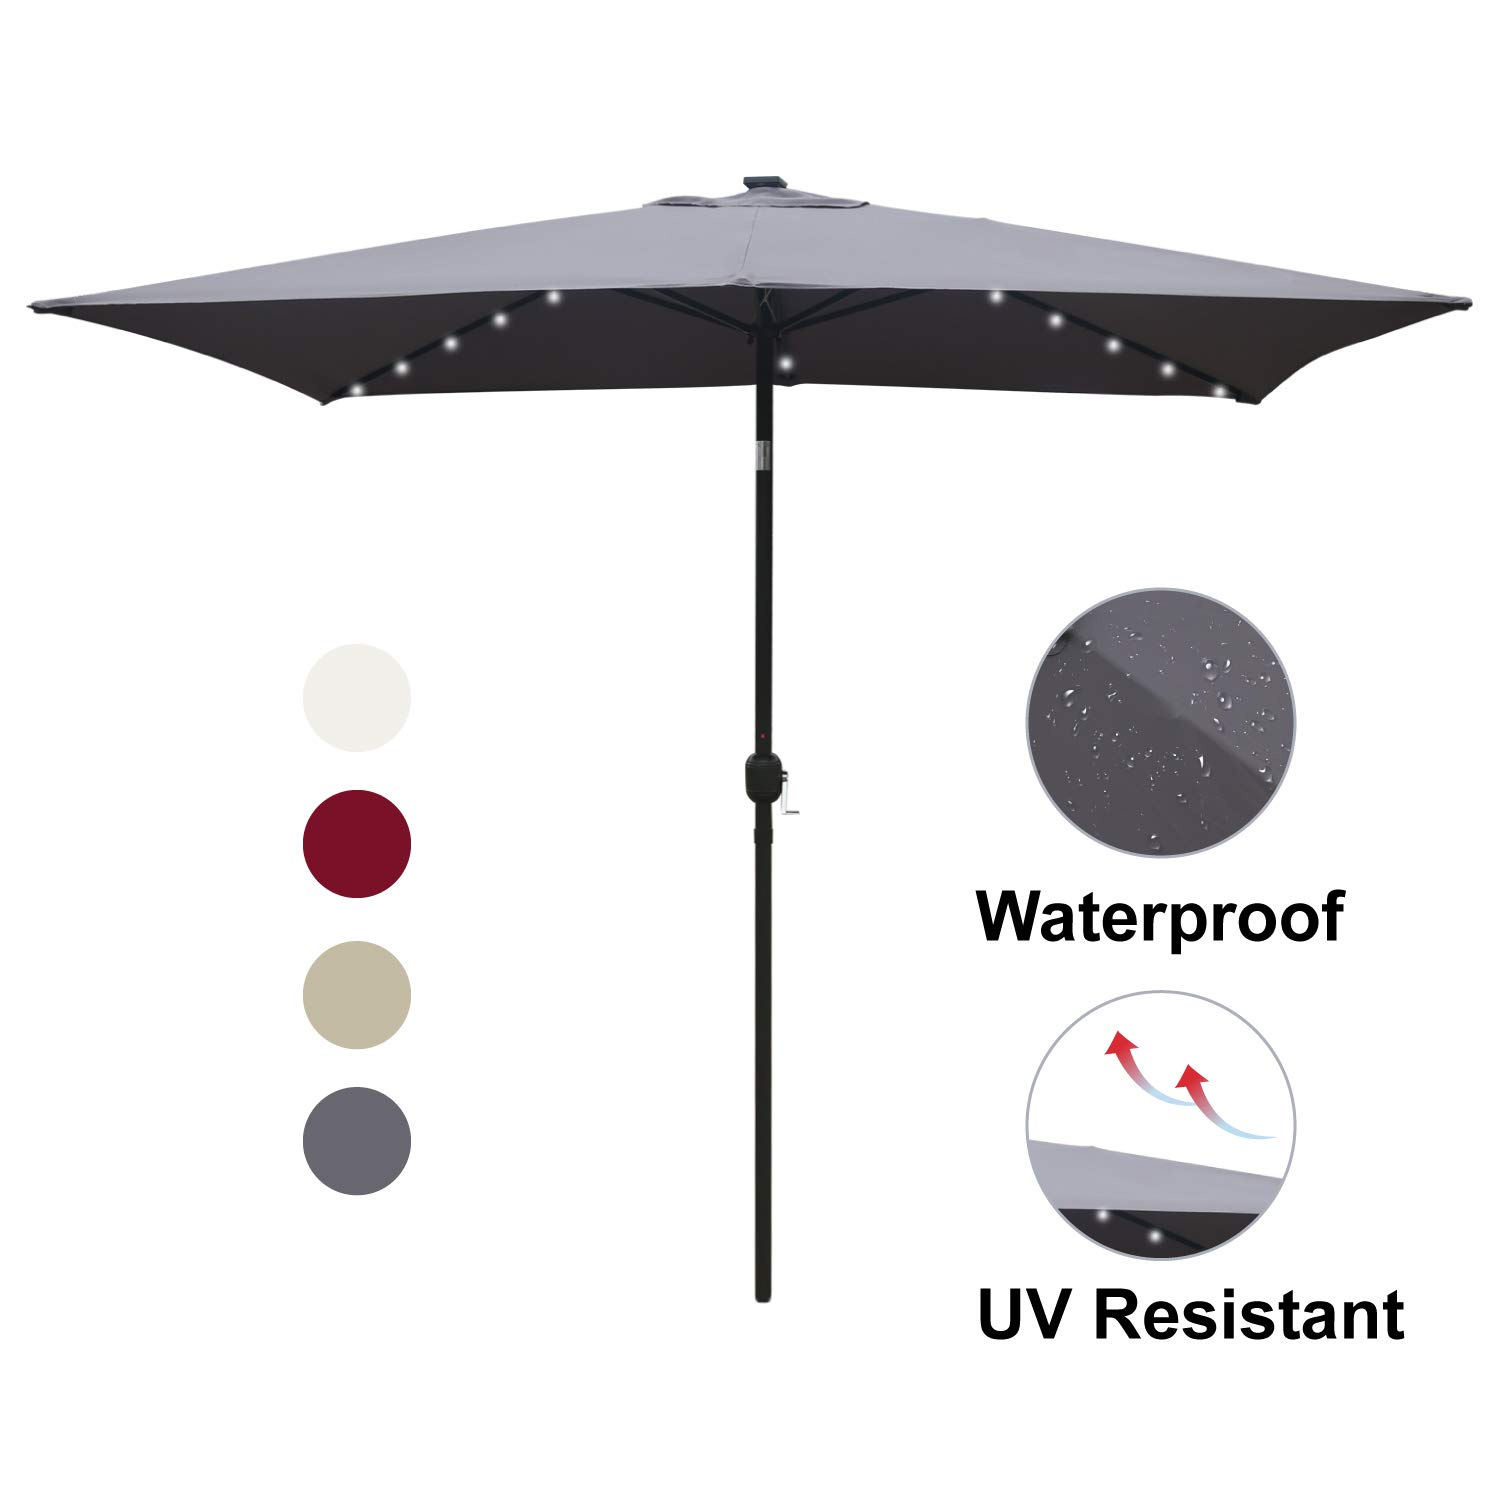 ABCCANOPY Rectangular Patio Umbrella Solar Powered Outdoor Umbrellas Market Table Umbrella with 26 LED Lights, Tilt and Crank for Patio Deck and Pool, 6.6 by 9.8 Ft (Dark Gray)